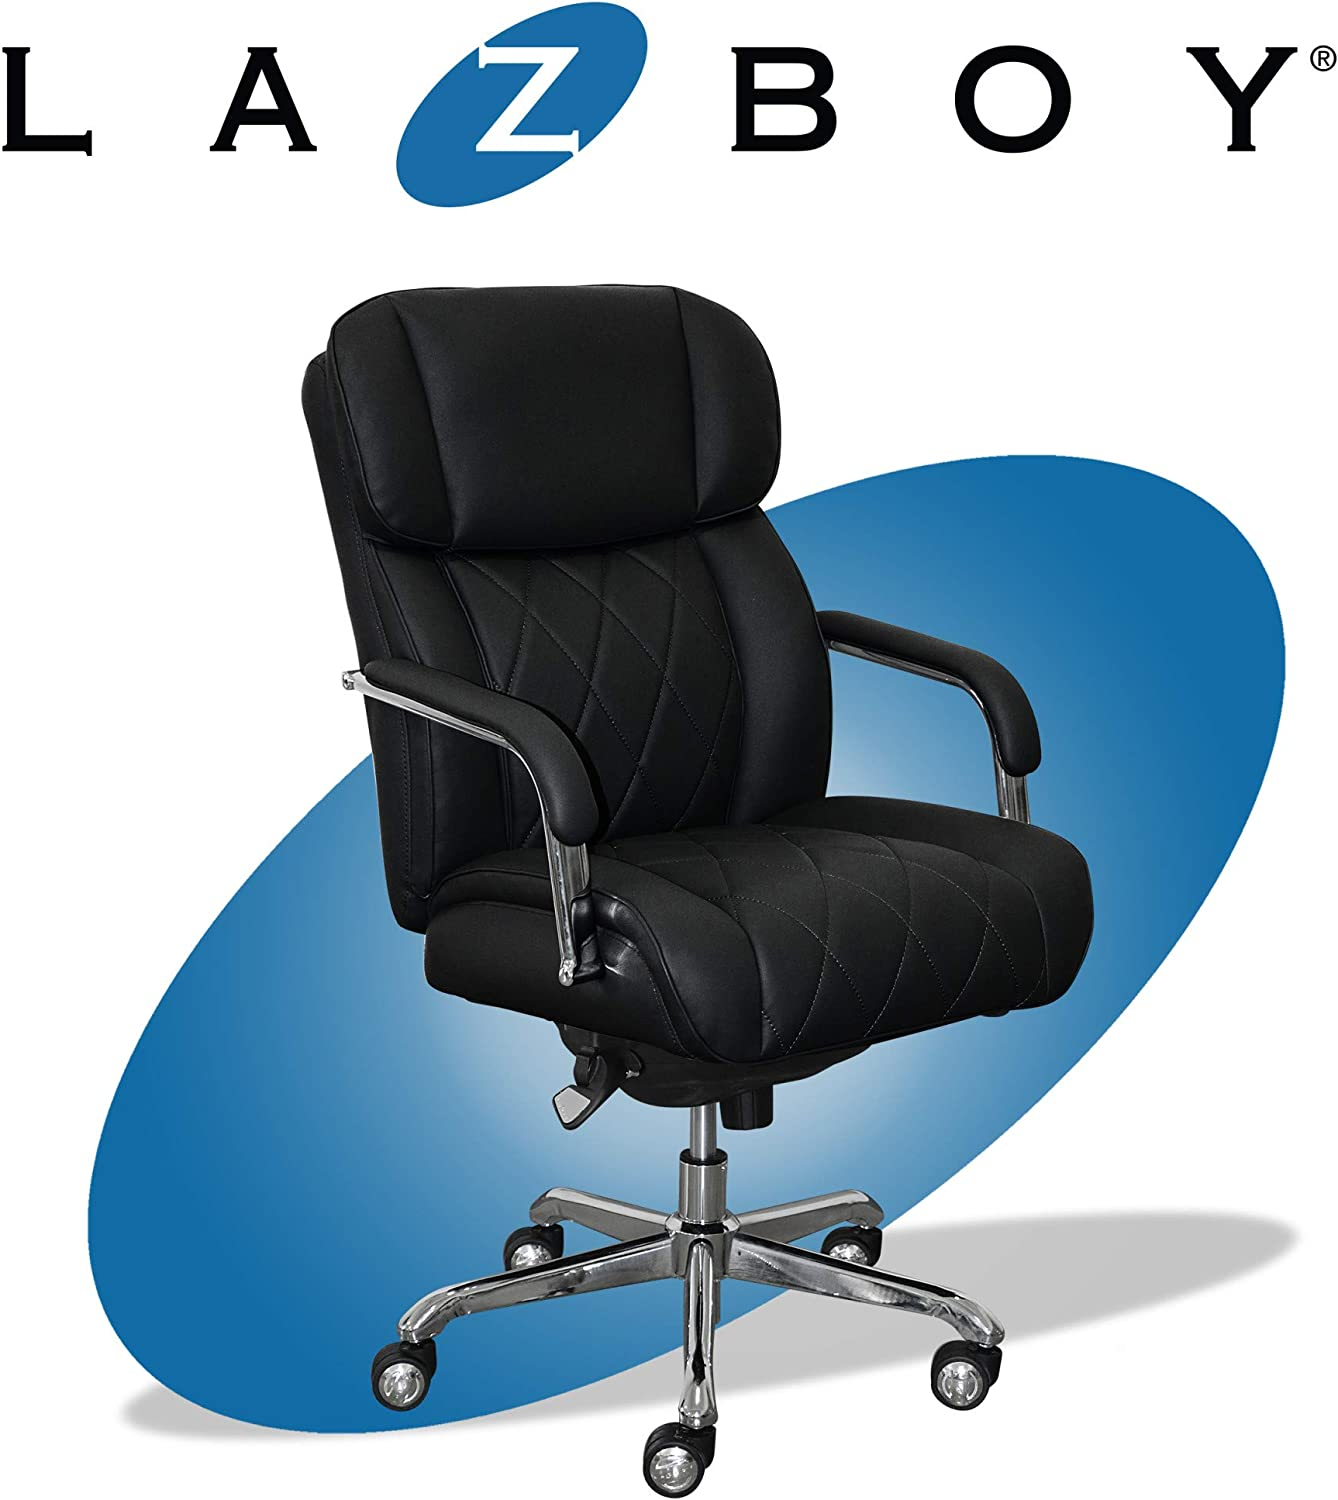 La-Z-Boy Sutherland Quilted Leather Executive Office Chair with Padded  Arms, High Back Ergonomic Desk Chair with Lumbar Support, Black Bonded  Leather